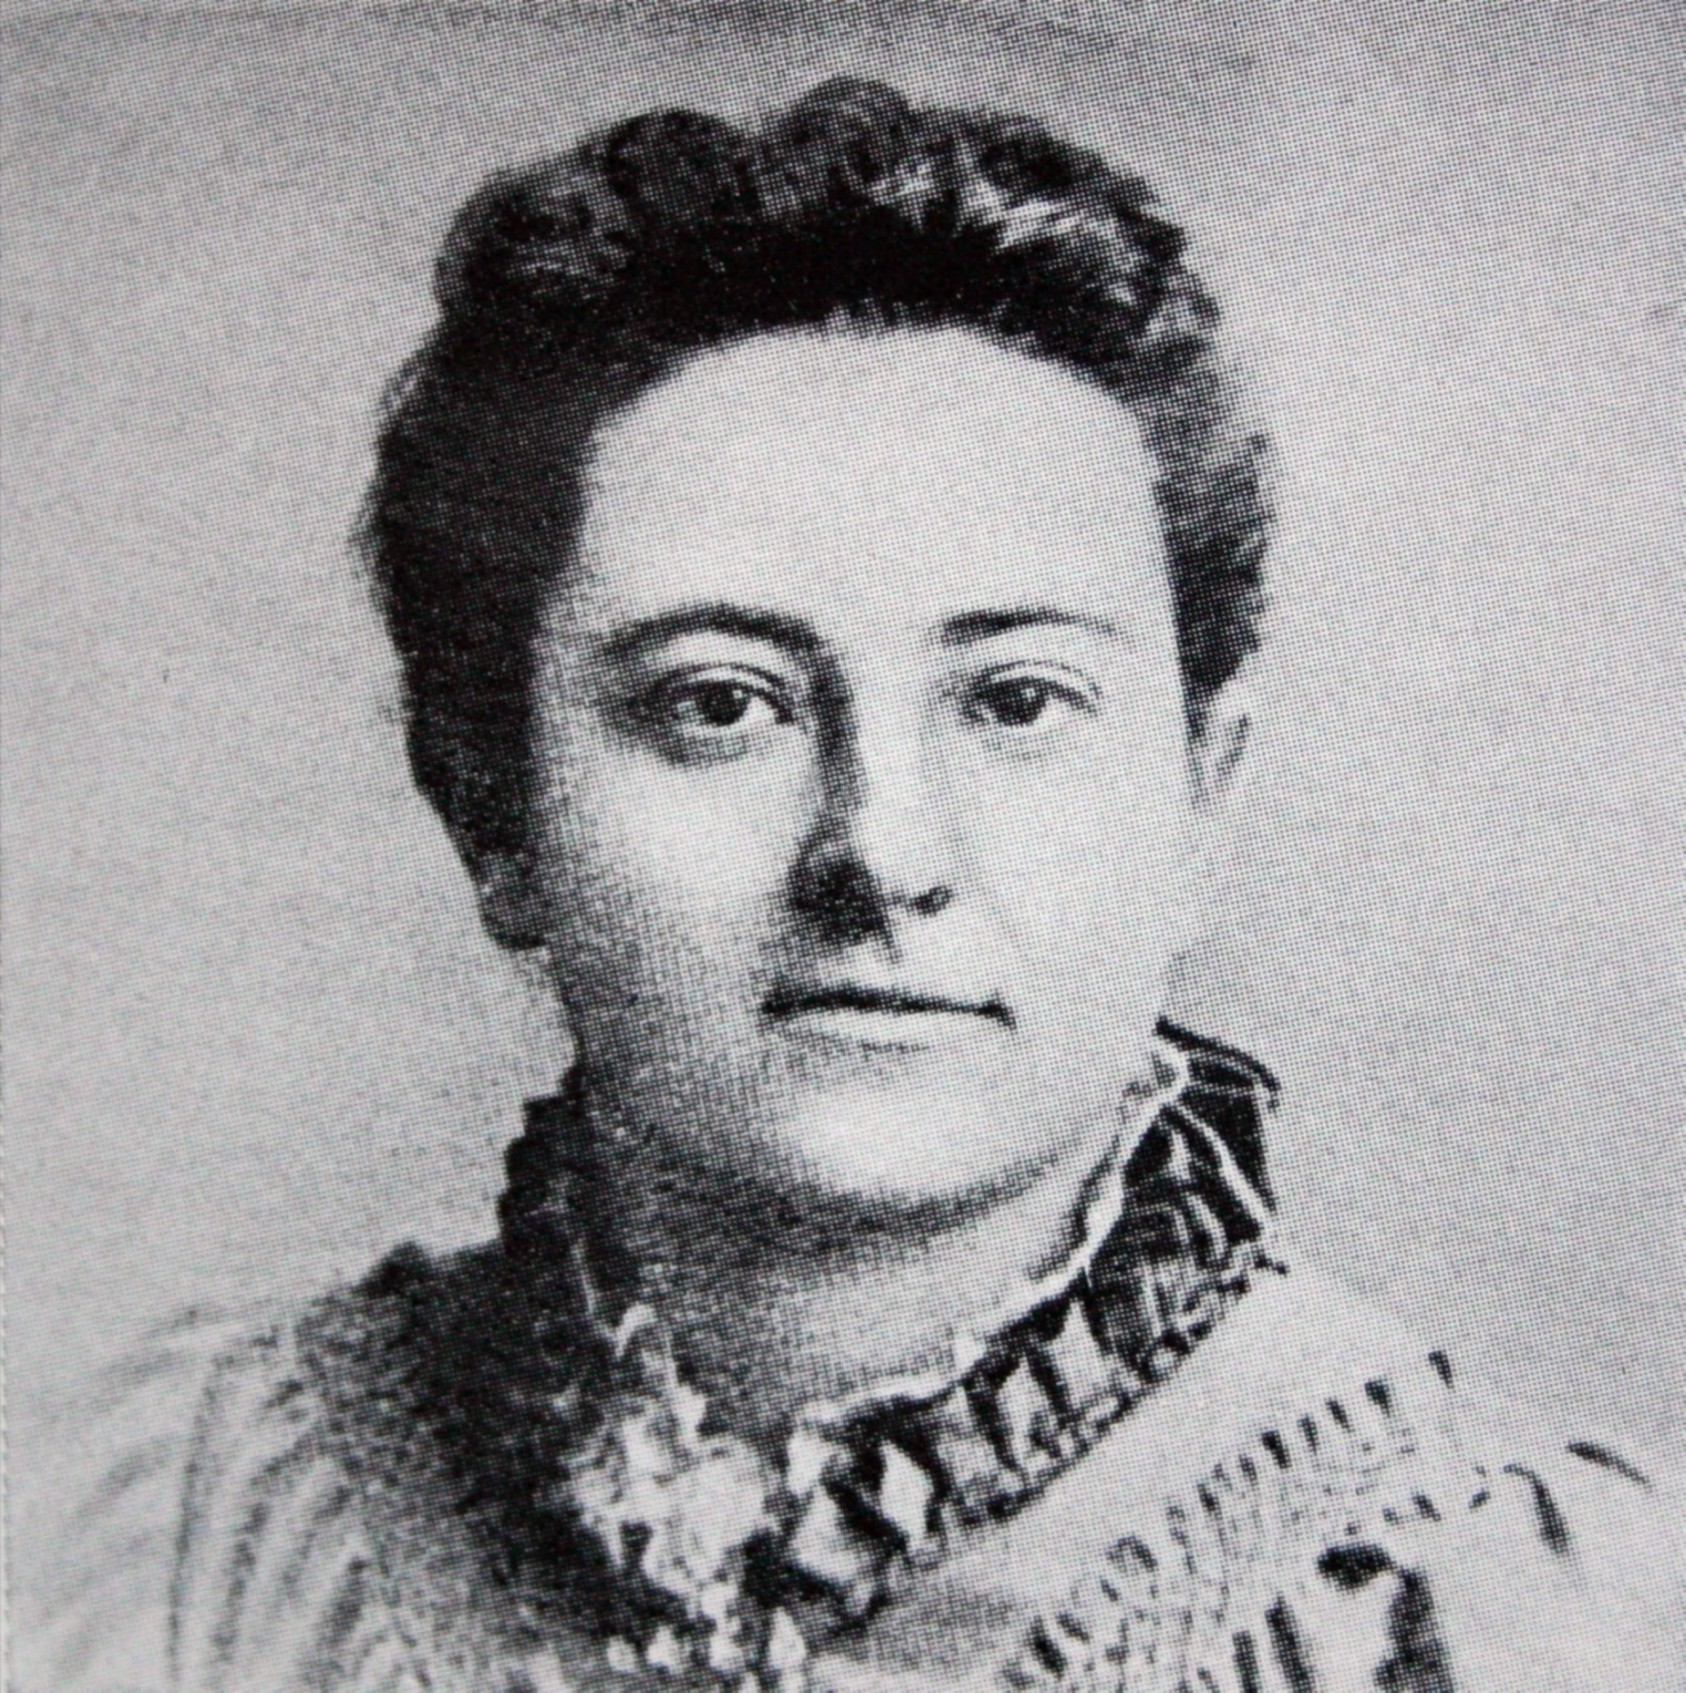 Black-and-white headshot of Olive Schreiner shows her from the shoulders up and facing the camera. Her eyes are gazing very slightly to her left. She is wearing a light-coloured dress or shirt with a dark-coloured, high, ruffled collar.